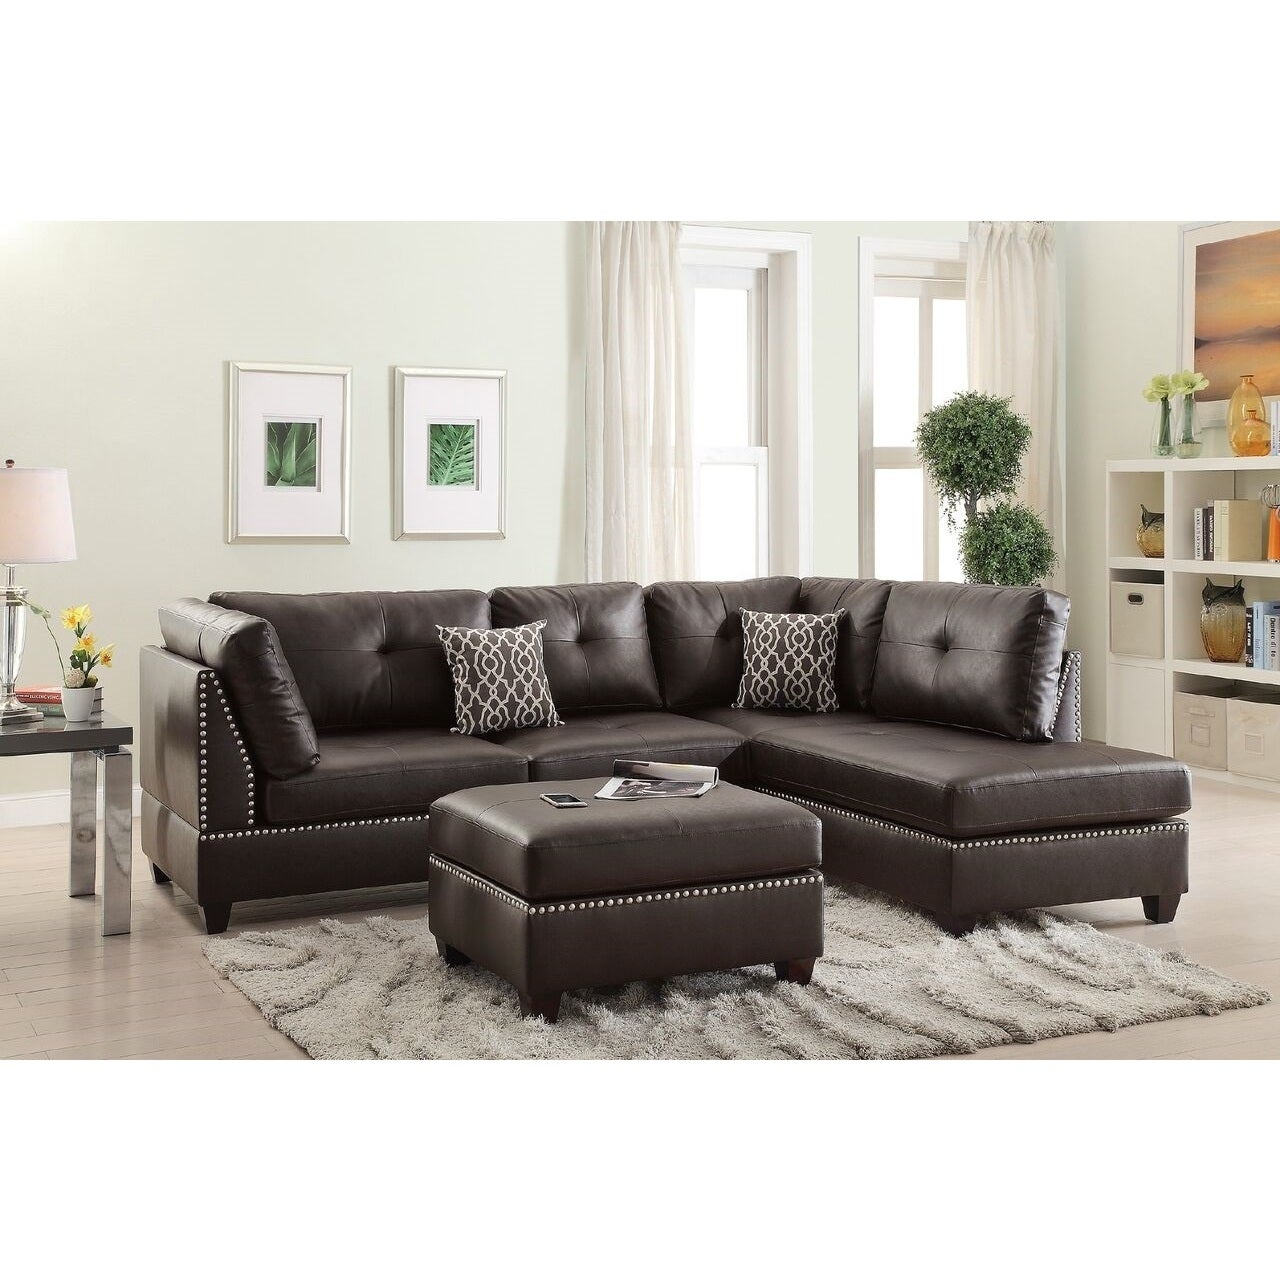 Shop yerevan sectional sofa upholstered in bonded leather free shipping today overstock 13232394